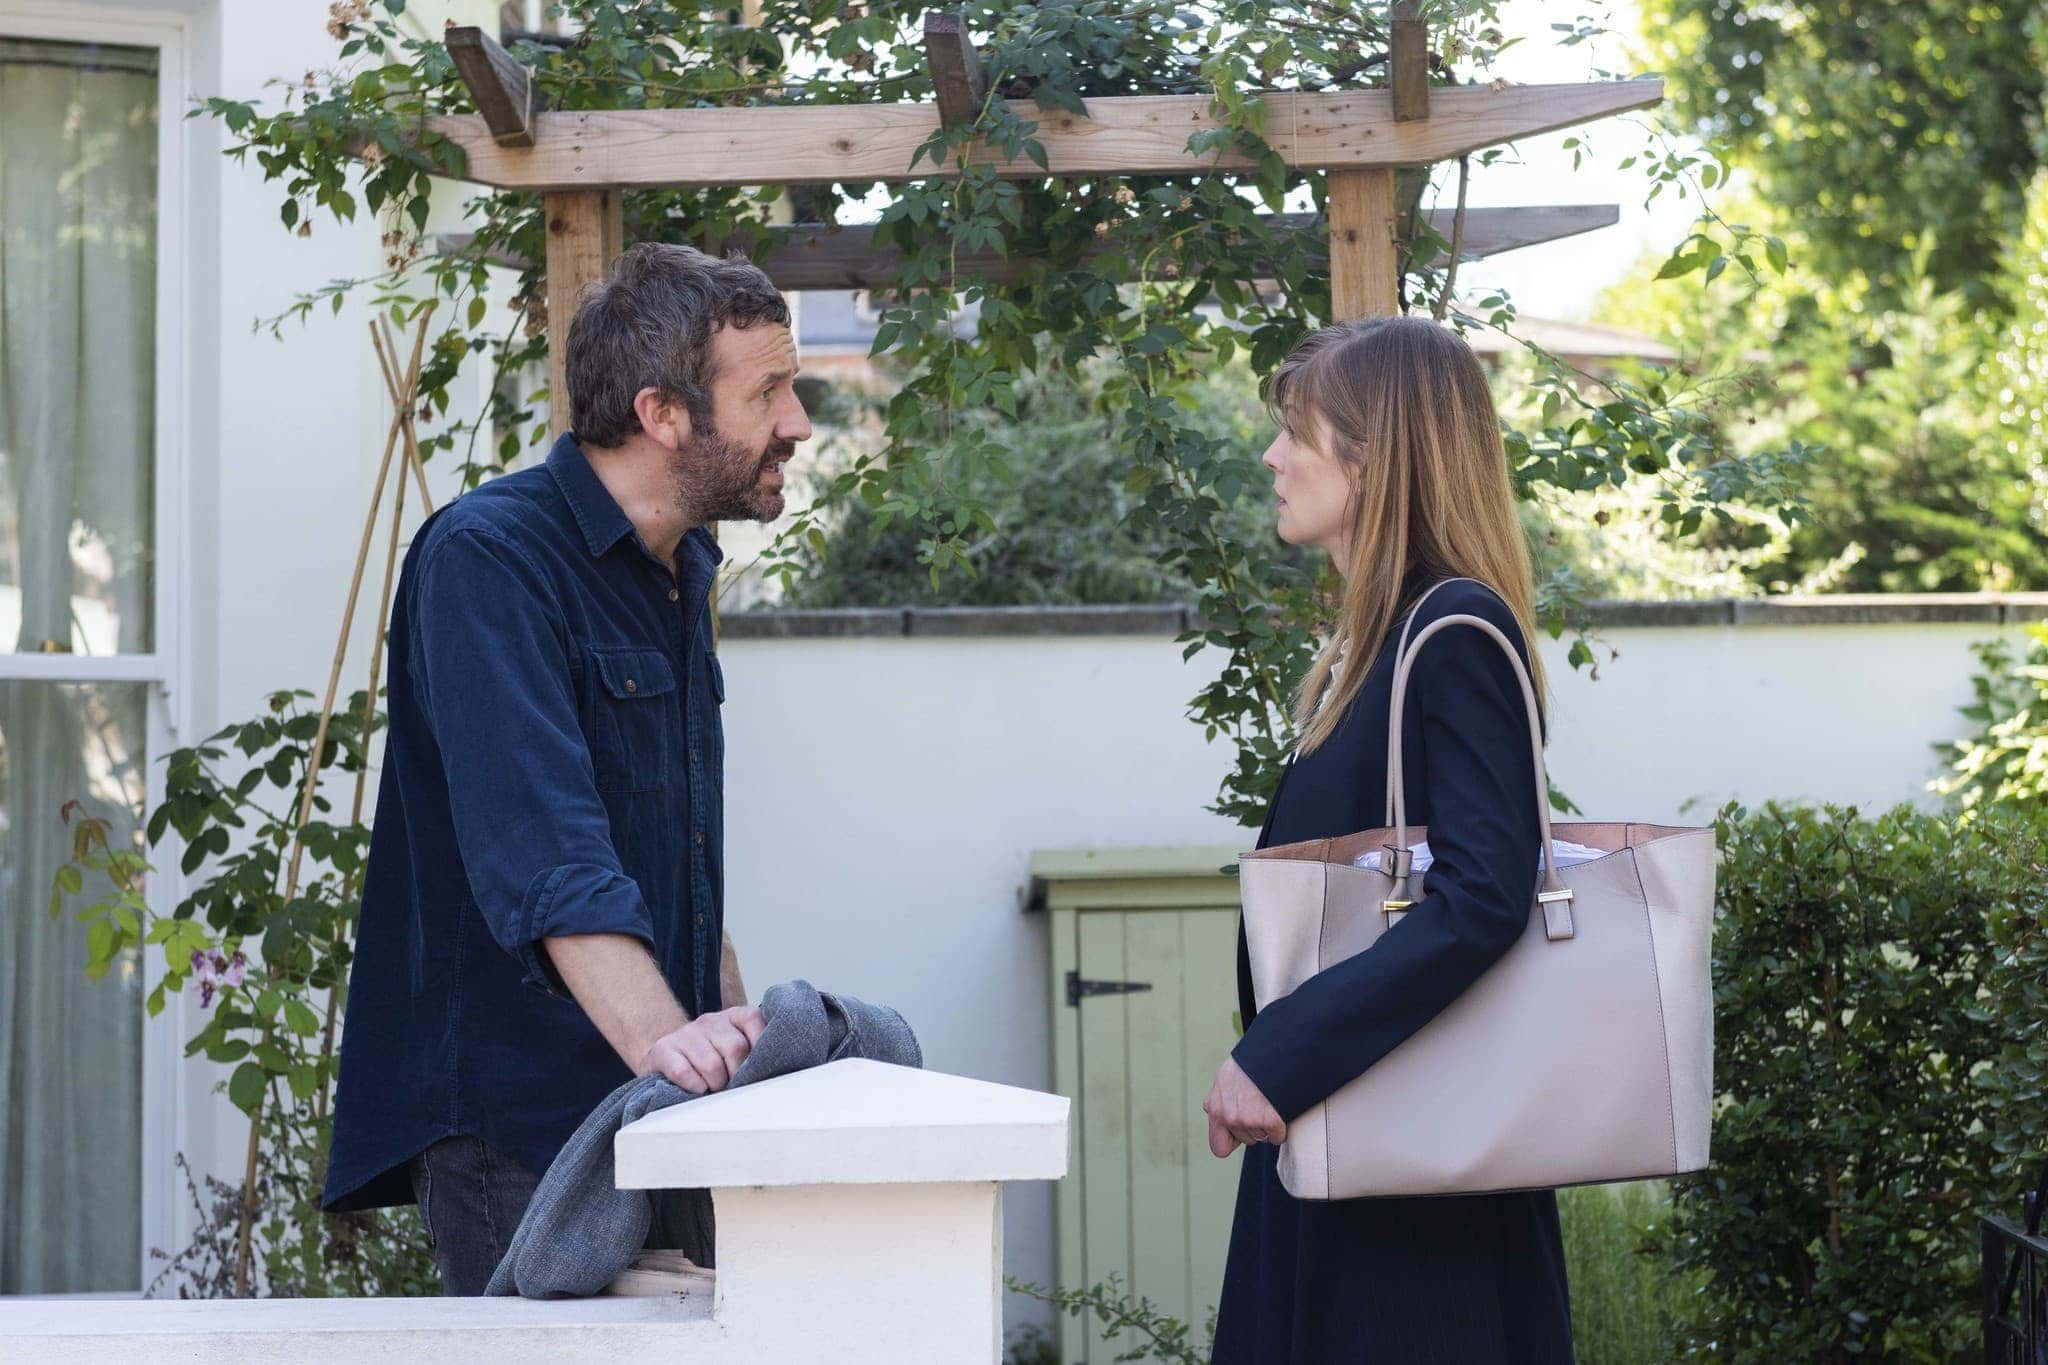 Rosamund Pike as Louise, Chris O'Dowd as Tom- State of the Union _ Season 1, Episode 2 - Photo Credit: Parisatag Hizadeh/Confession Films/SundanceTV